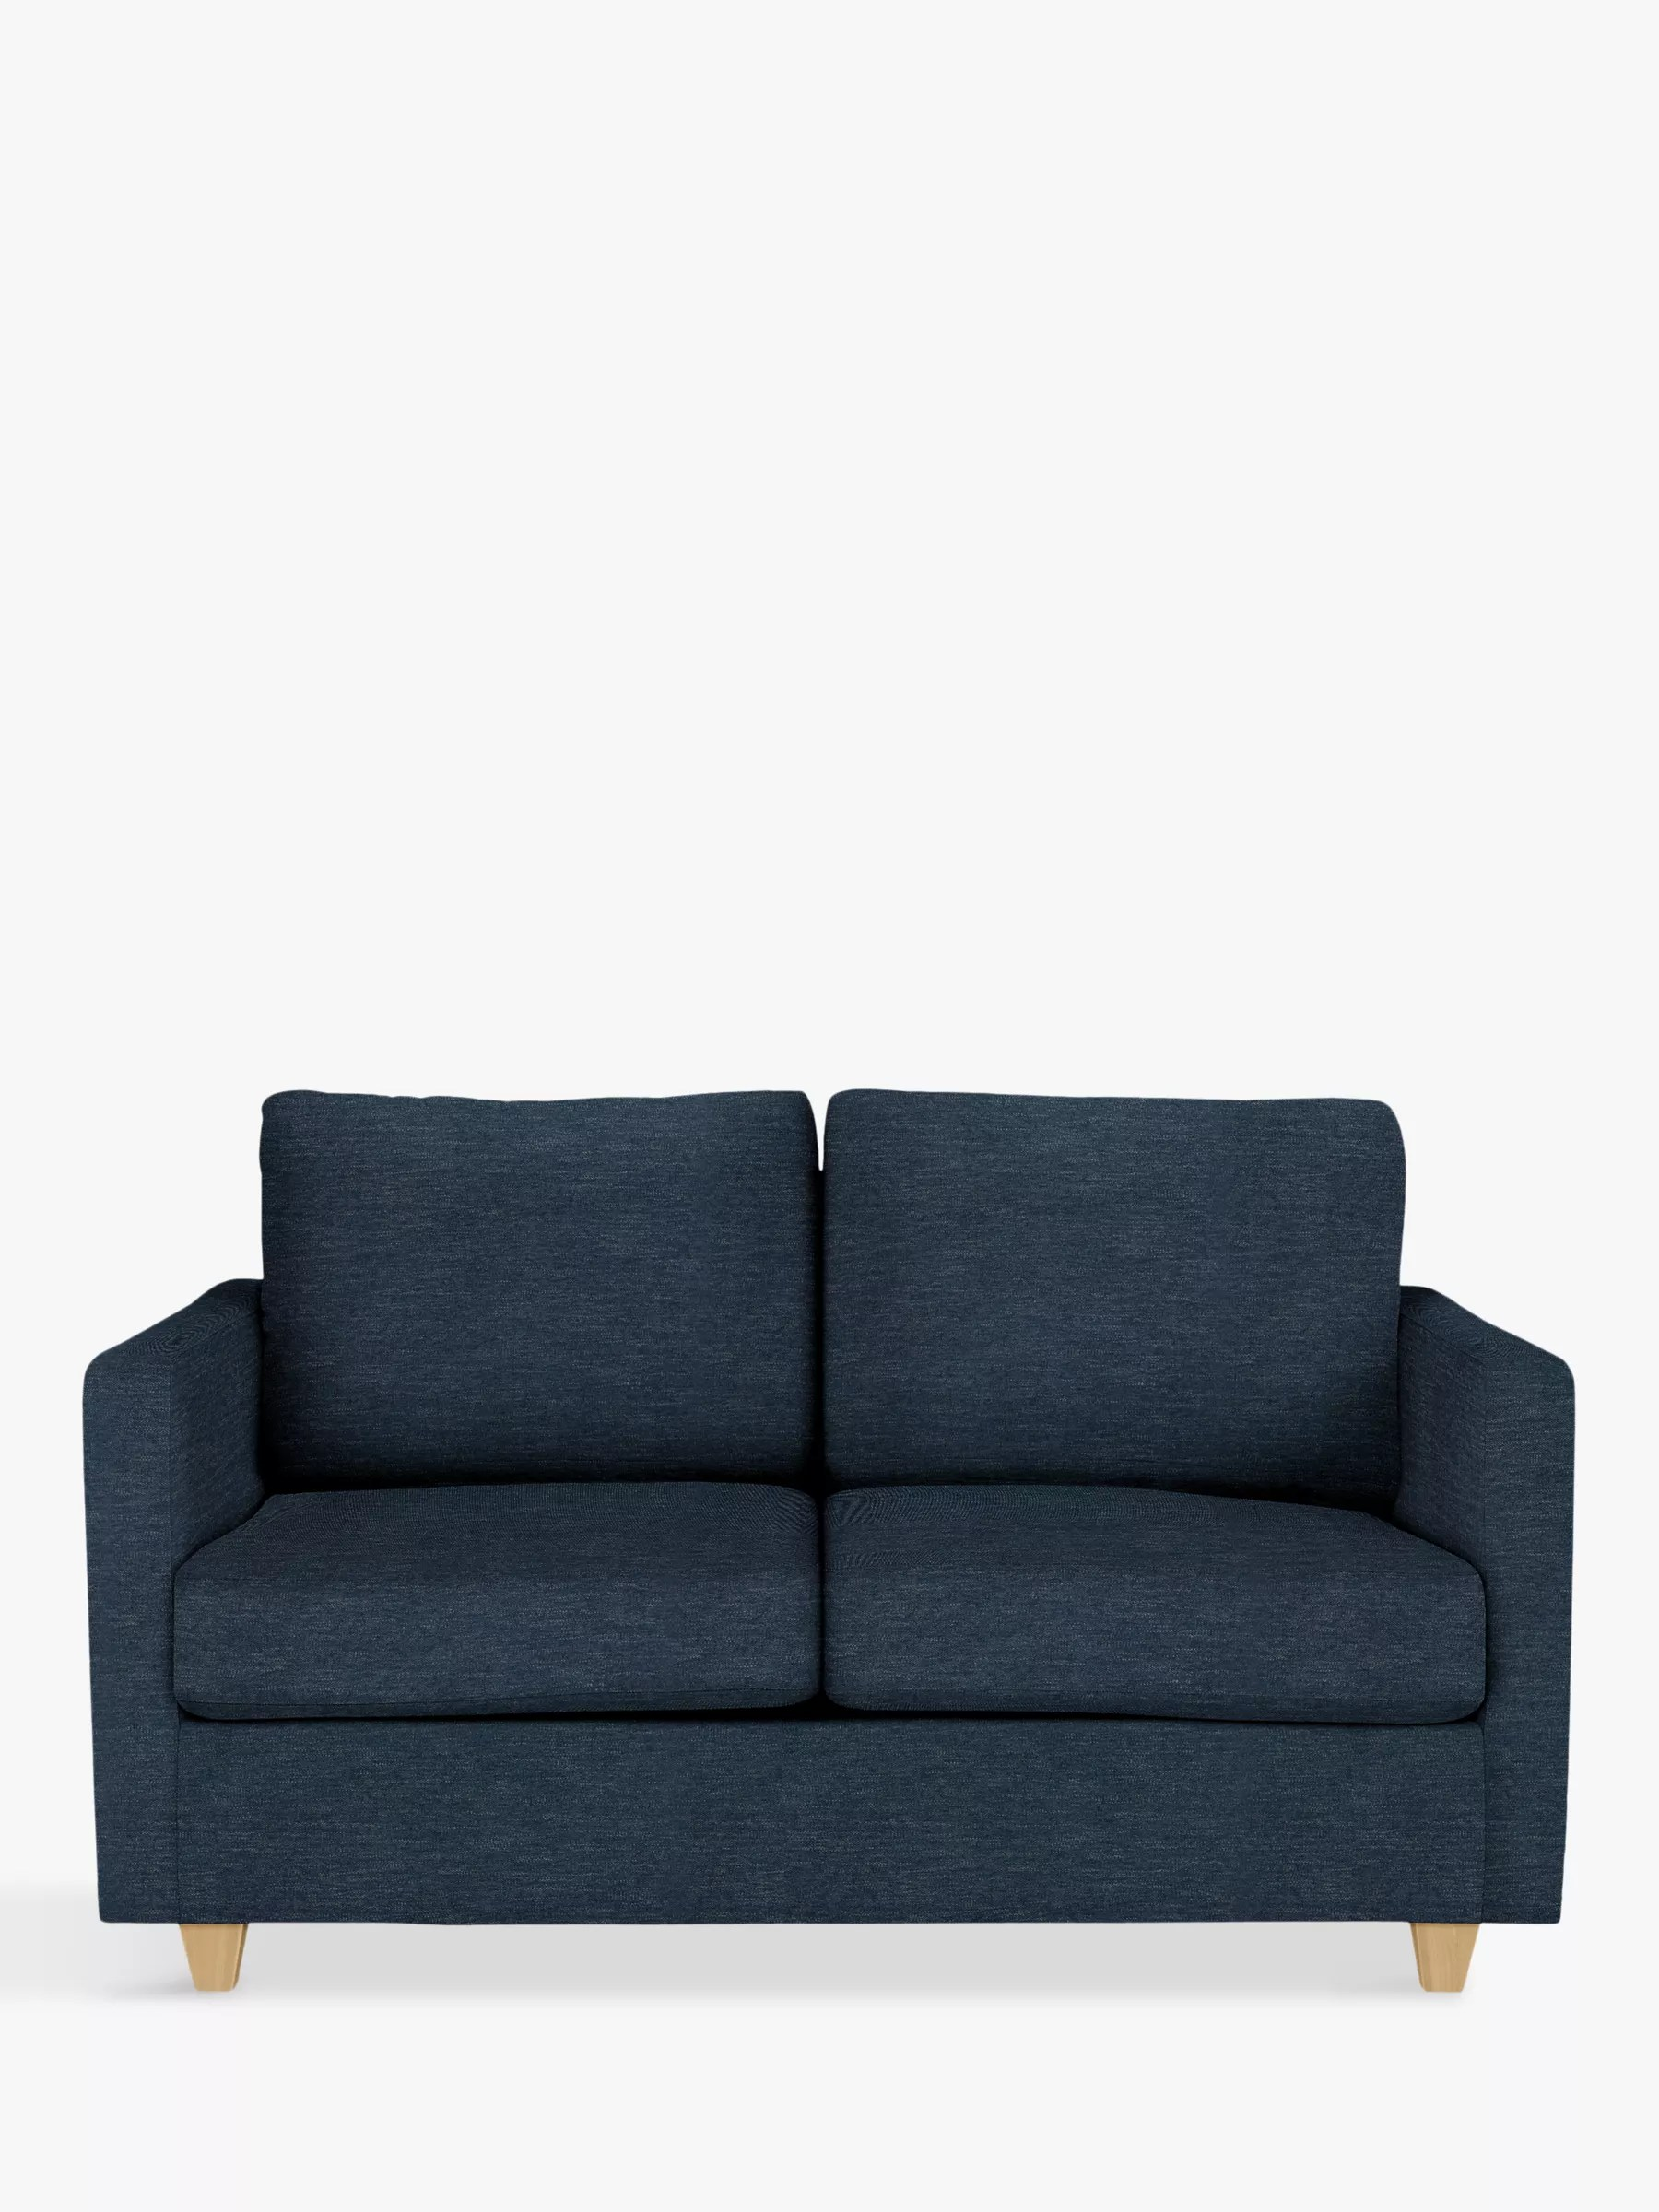 2 seater sofa bed corner sale ireland john lewis and partners barlow small with